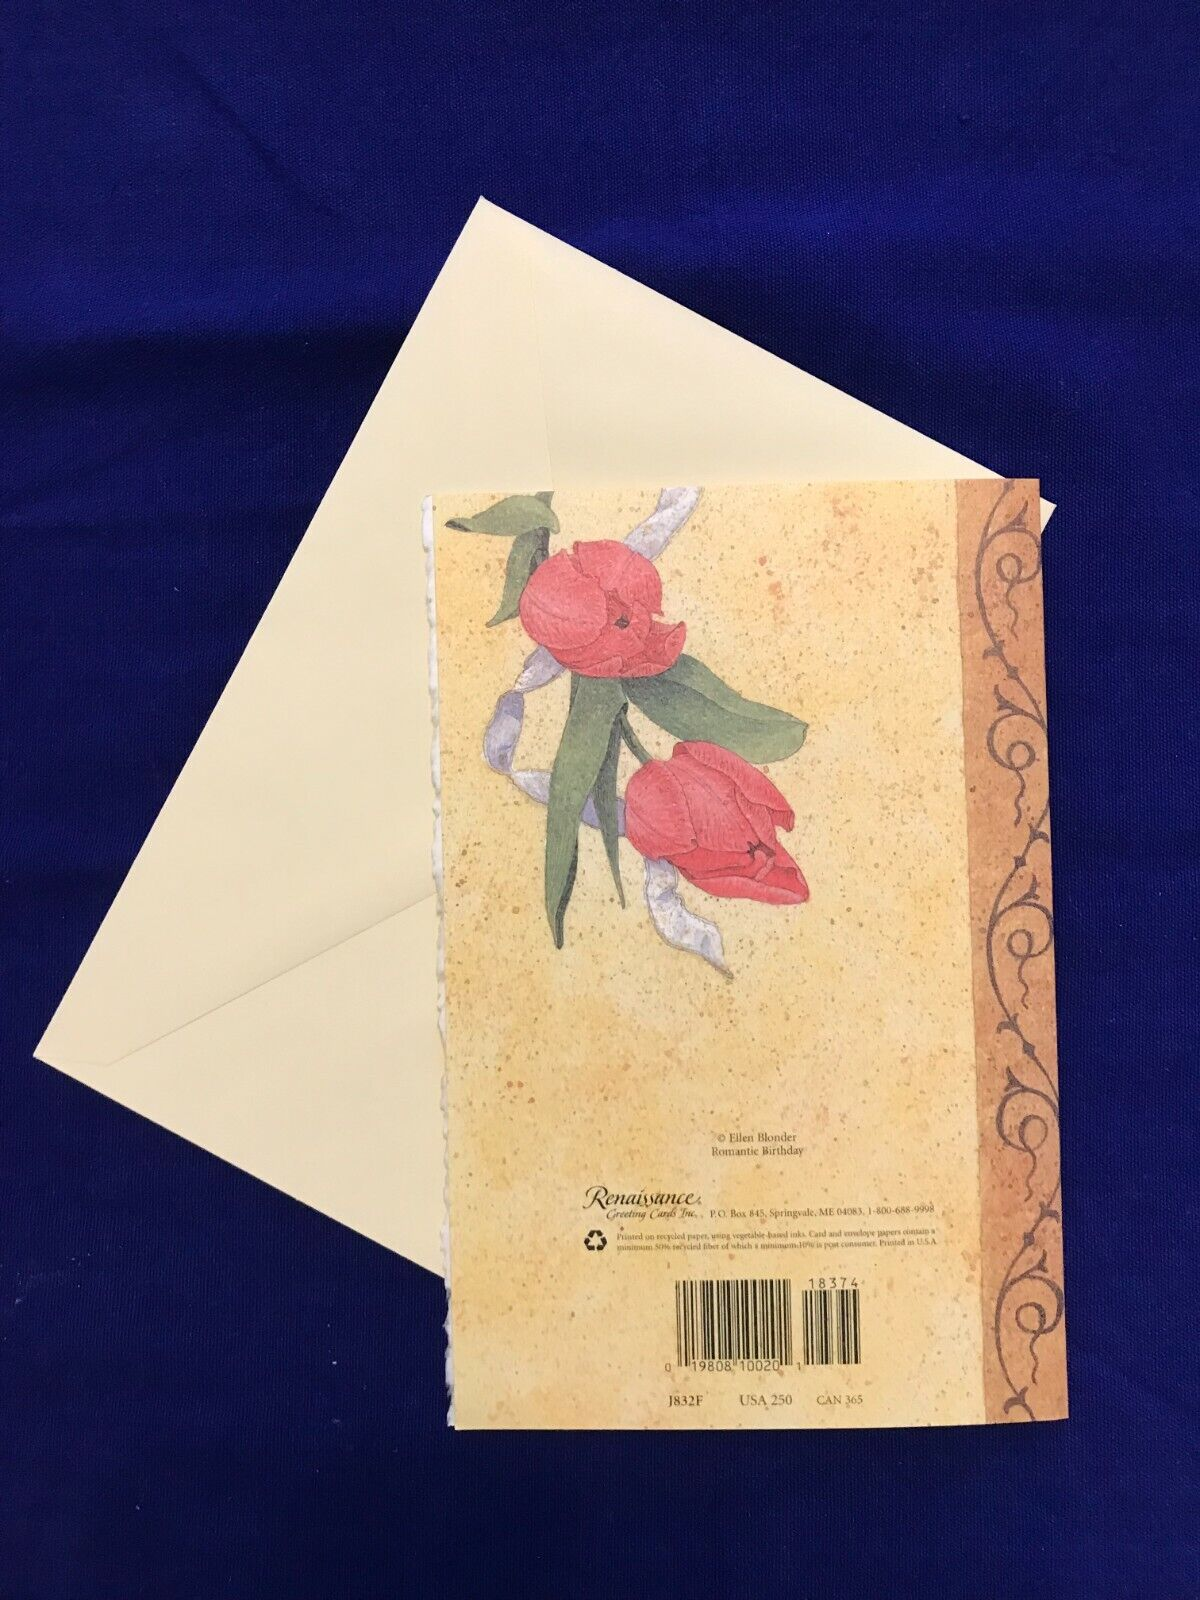 Love Birthday Greeting Card - You ve Given Me So Many Spec Renaissance NEW A44  - $3.75